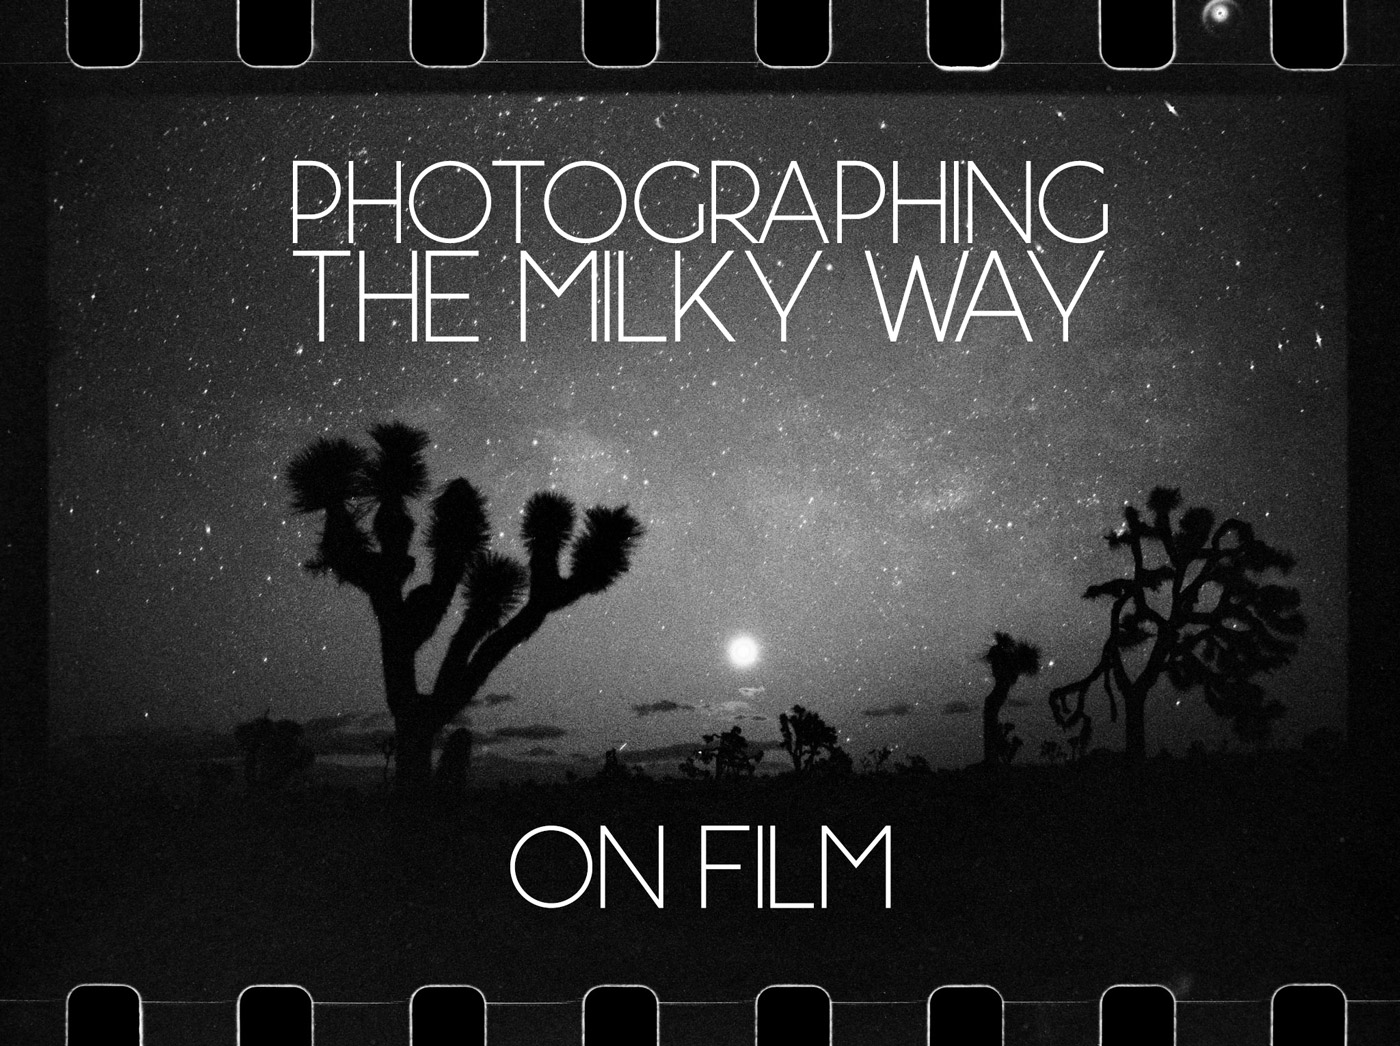 photographing-the-milky-way-on-film